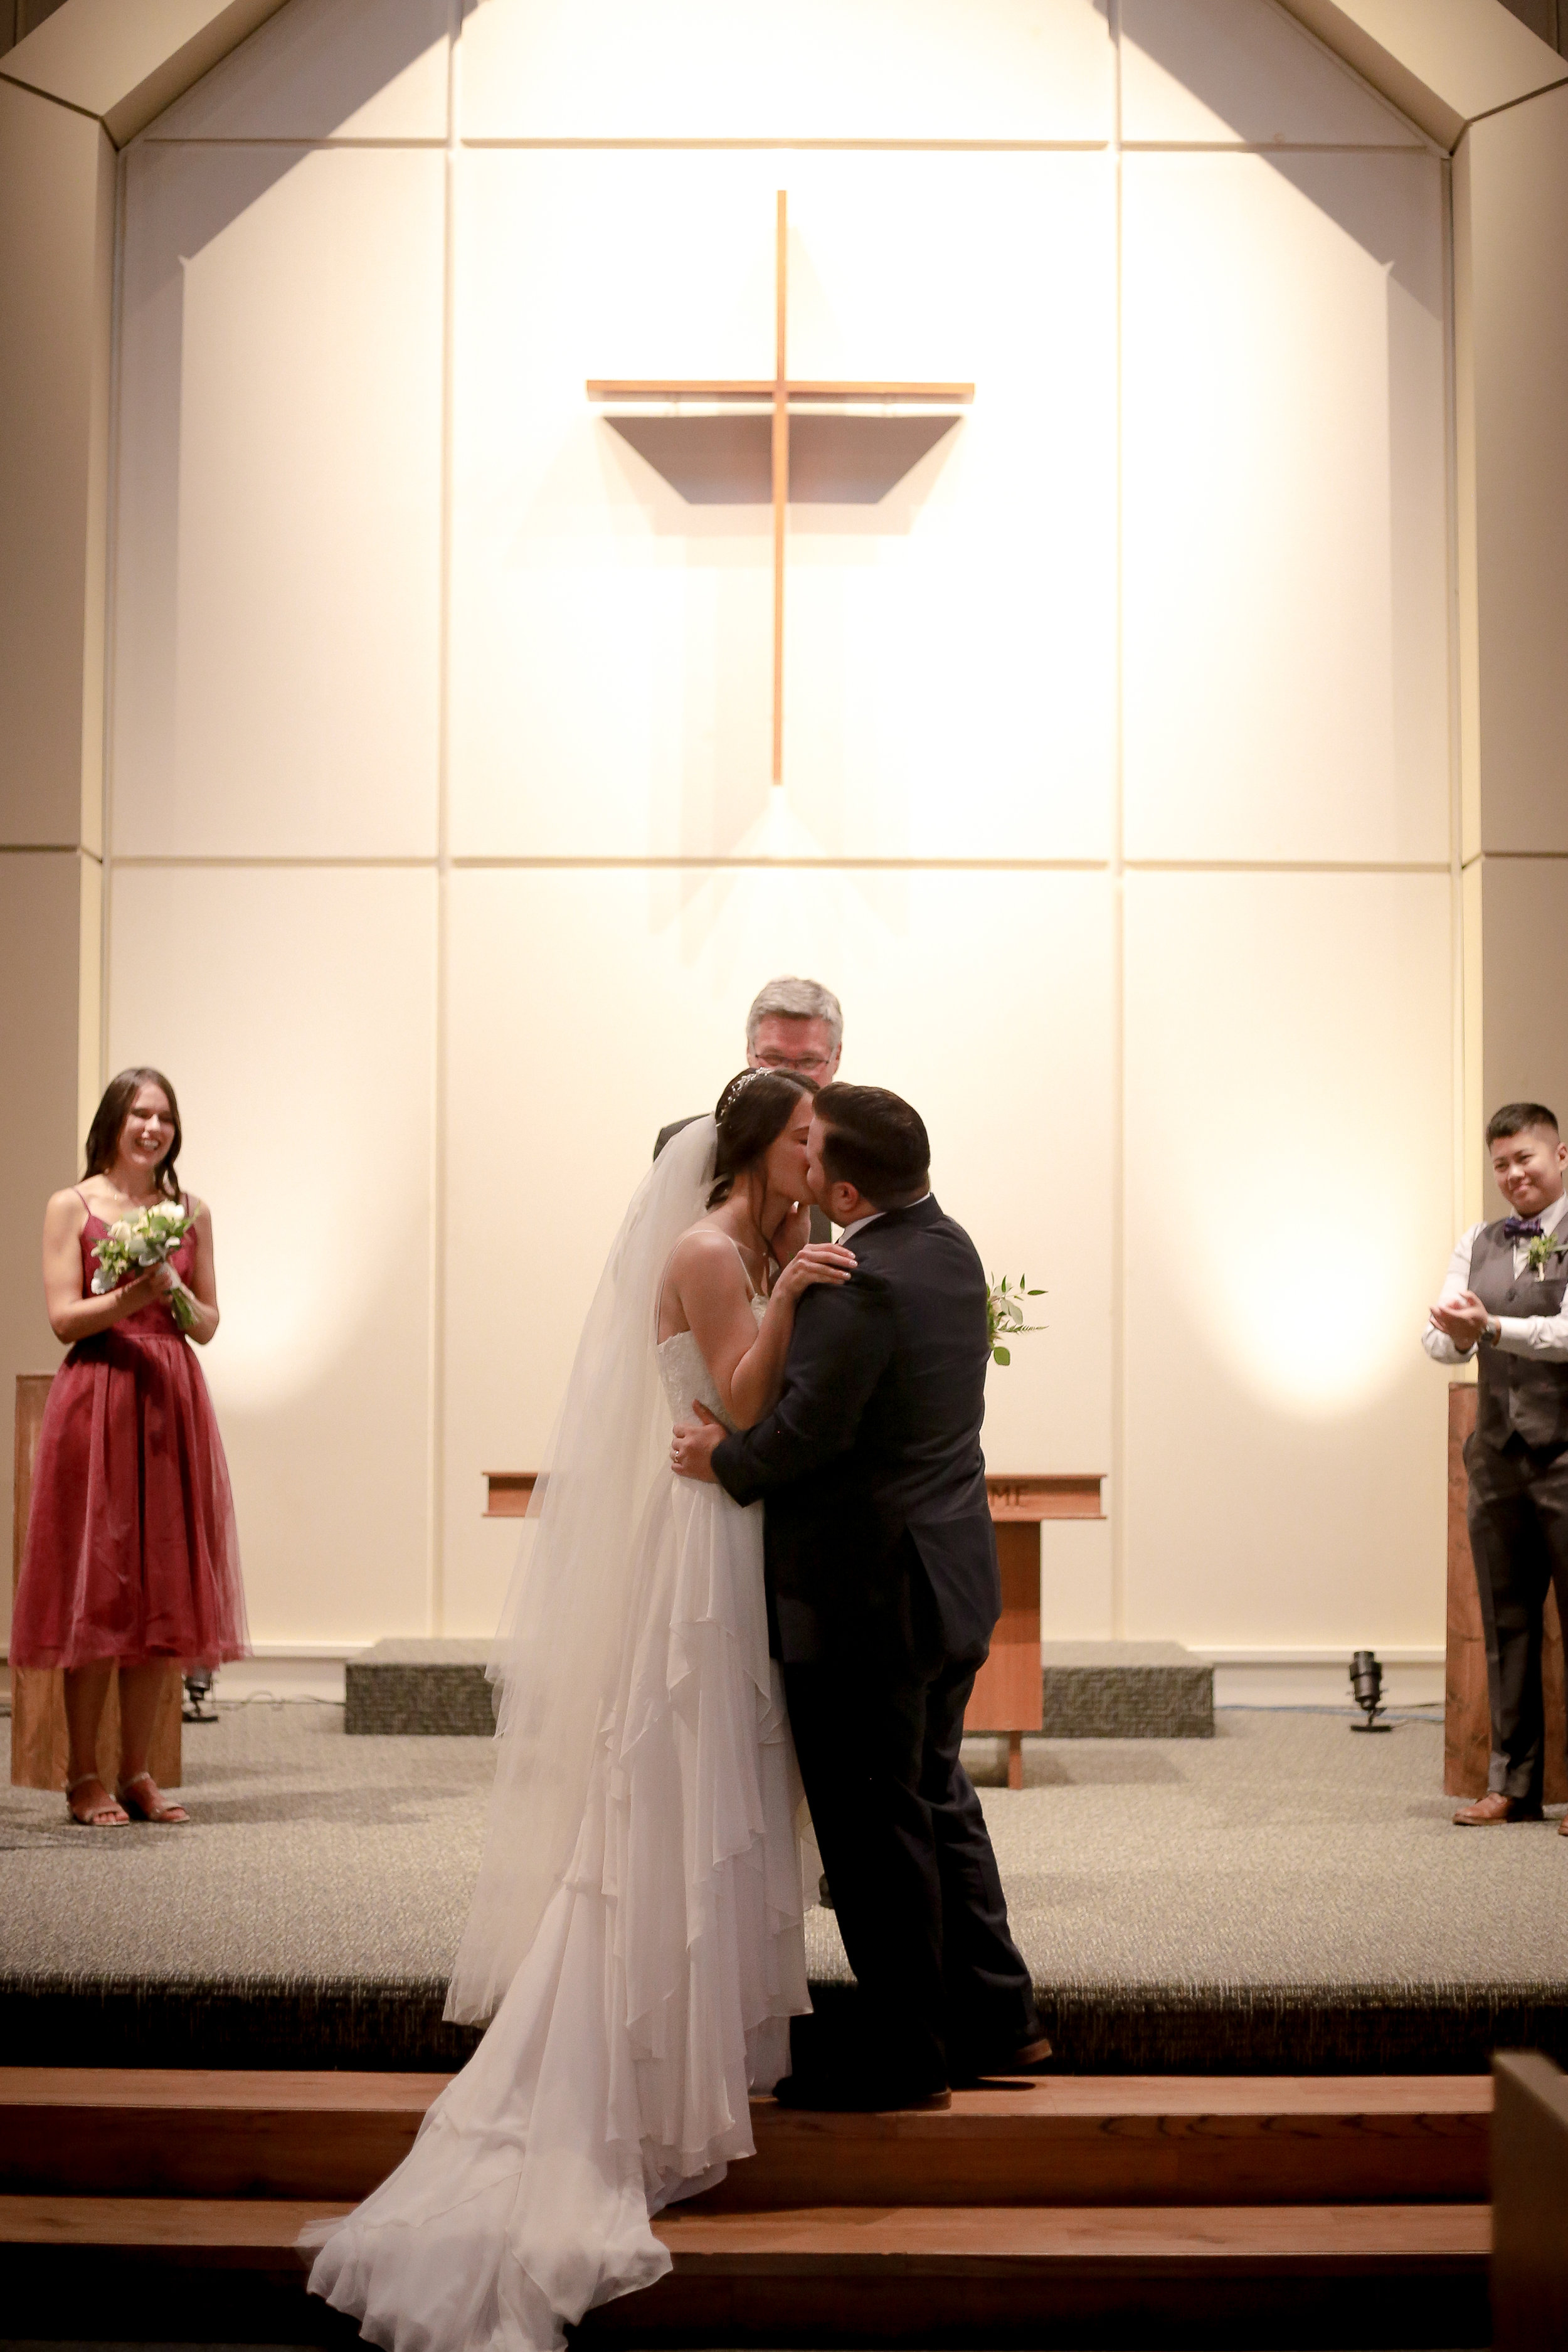 Emily&AaronWedding (280 of 572).jpg